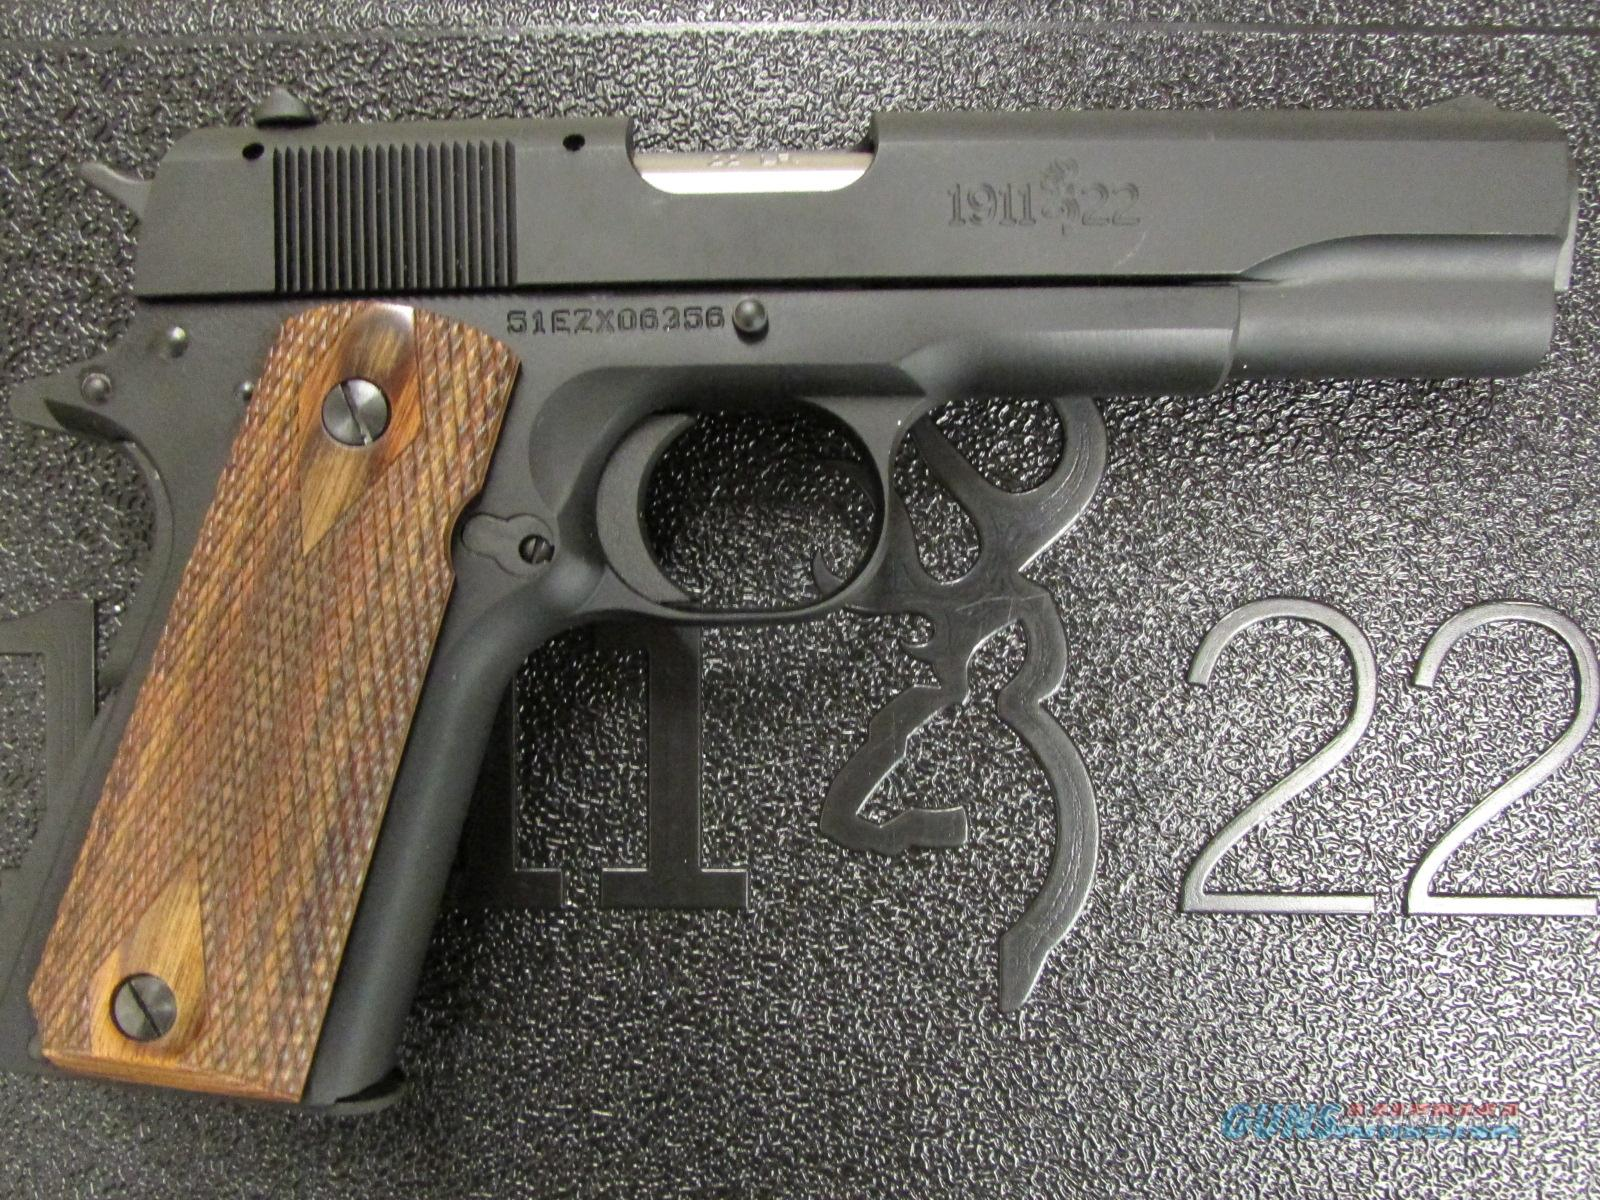 Browning 1911-22 A1 Used .22 LR Pistol  Guns > Pistols > Browning Pistols > Other Autos